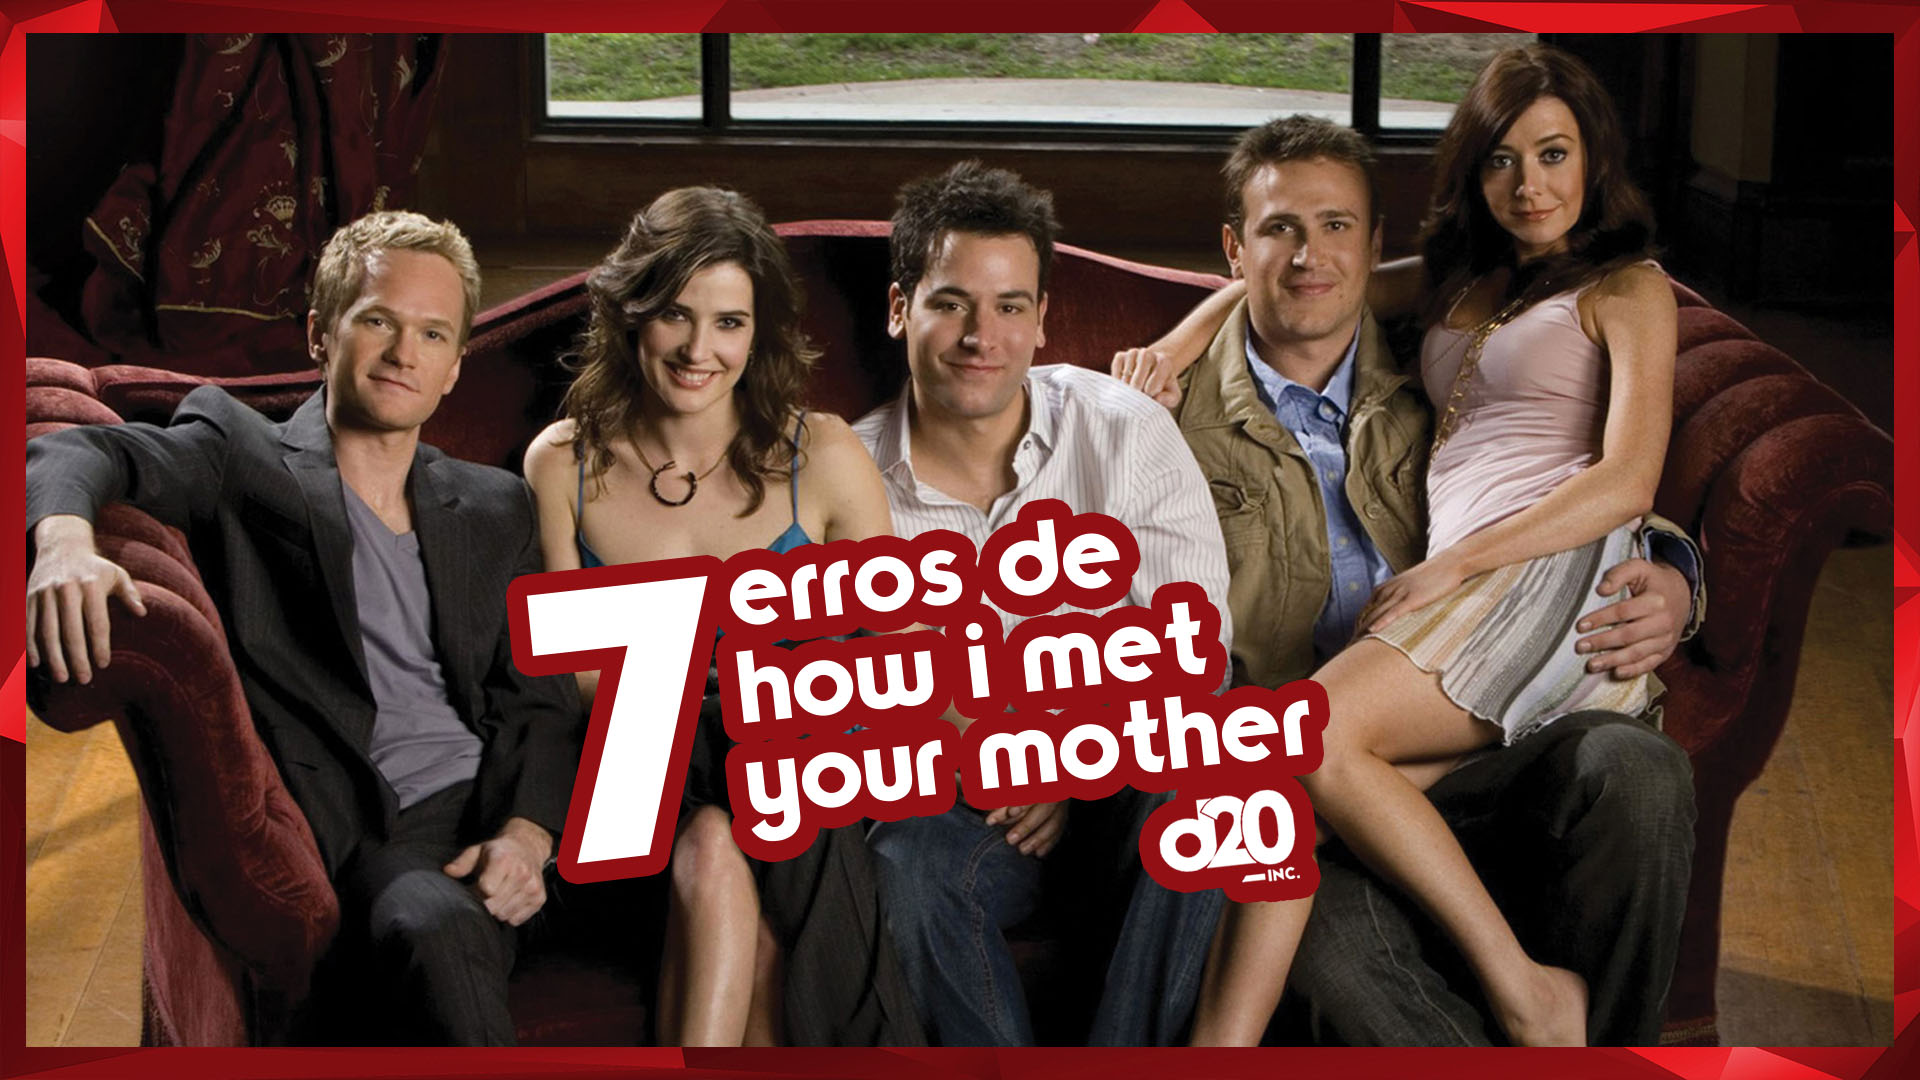 7 Erros de How I Met Your Mother | D20 Lab 55